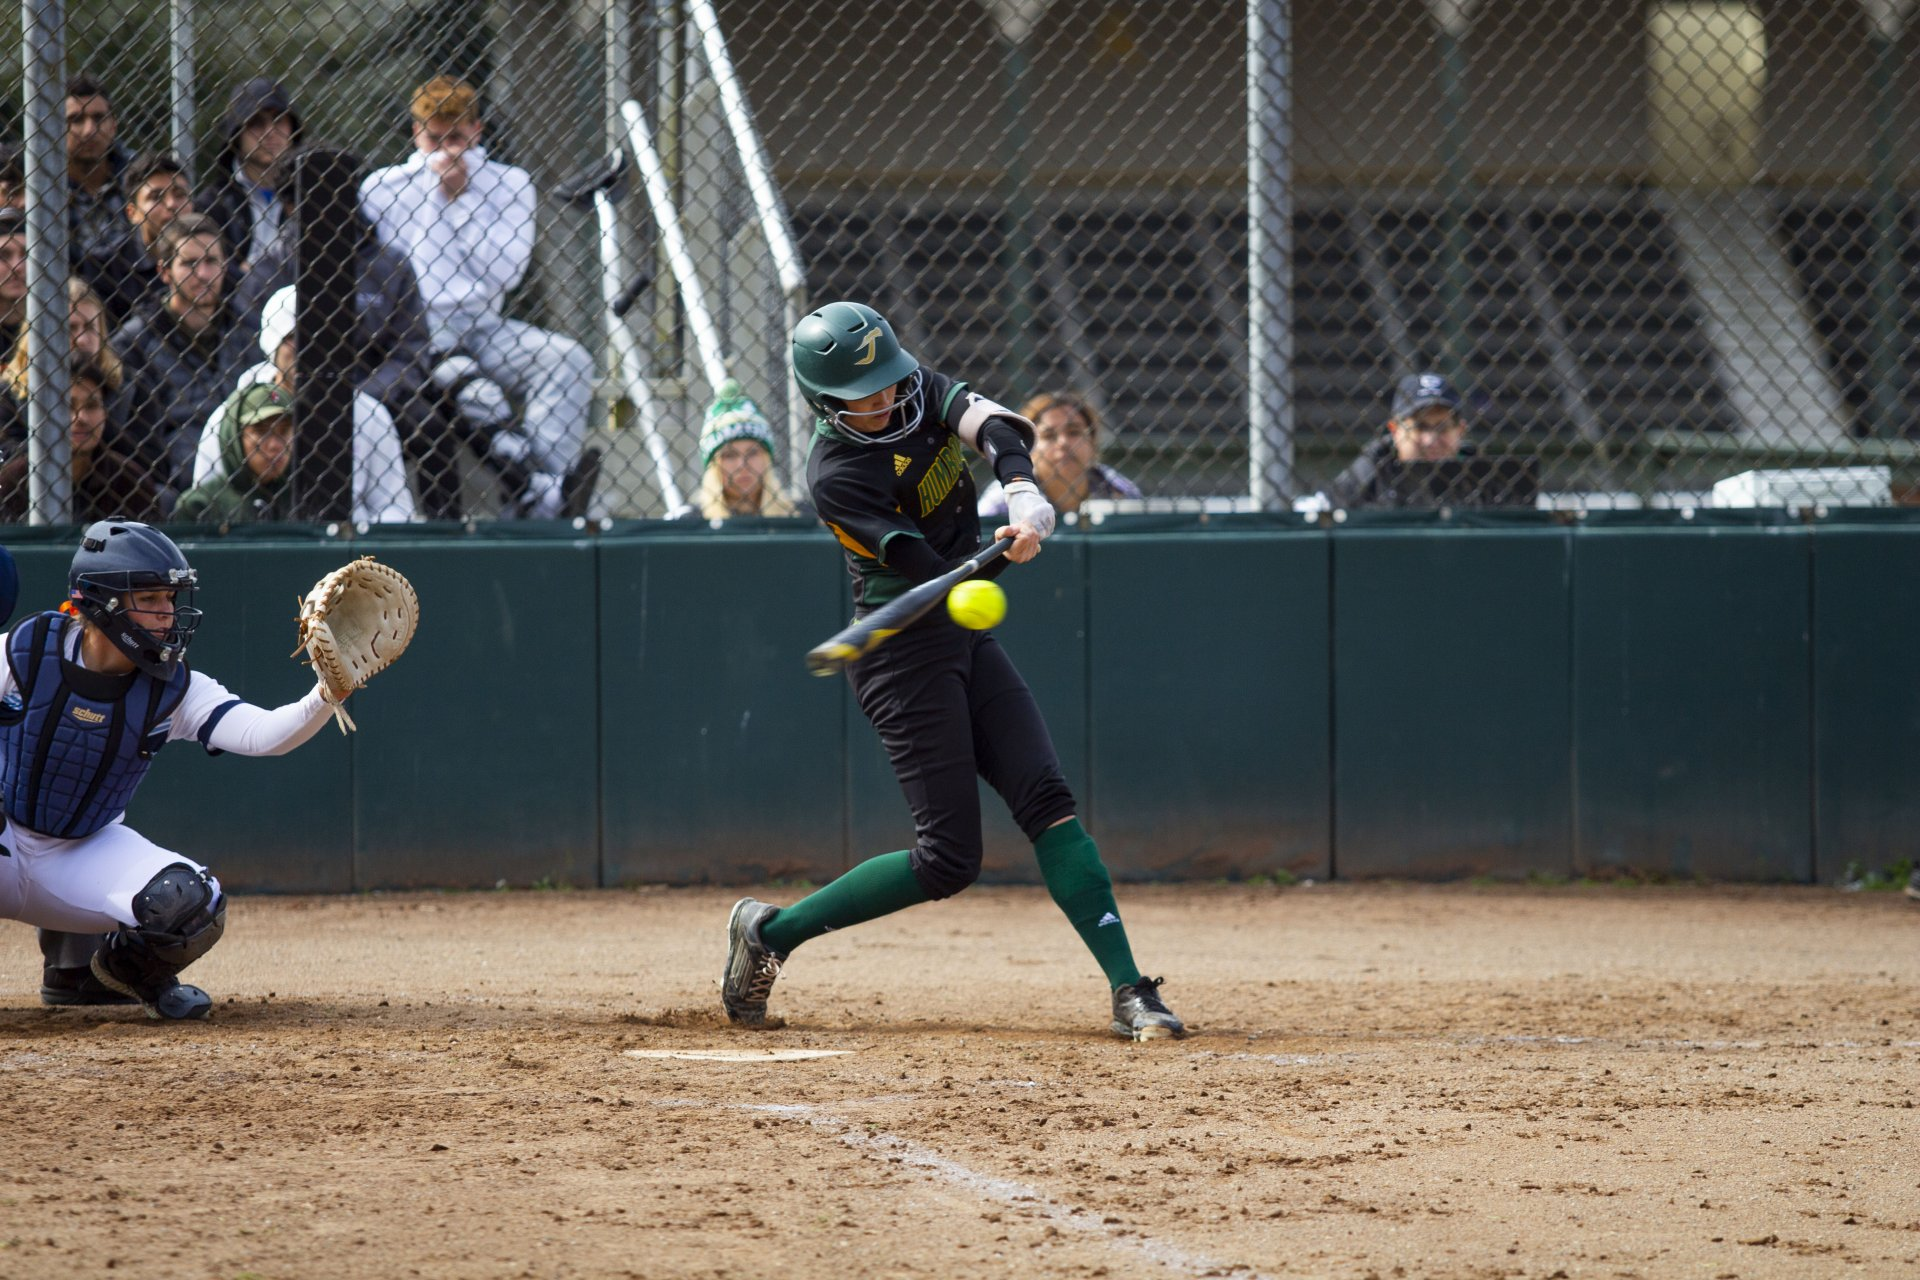 Humboldt State outfielder Lauren Lipe takes a swing at a pitch during the Lumberjacks' second game of a doubleheader against Sonoma State on Feb. 29 at HSU Softball Field. | Photo by Thomas Lal